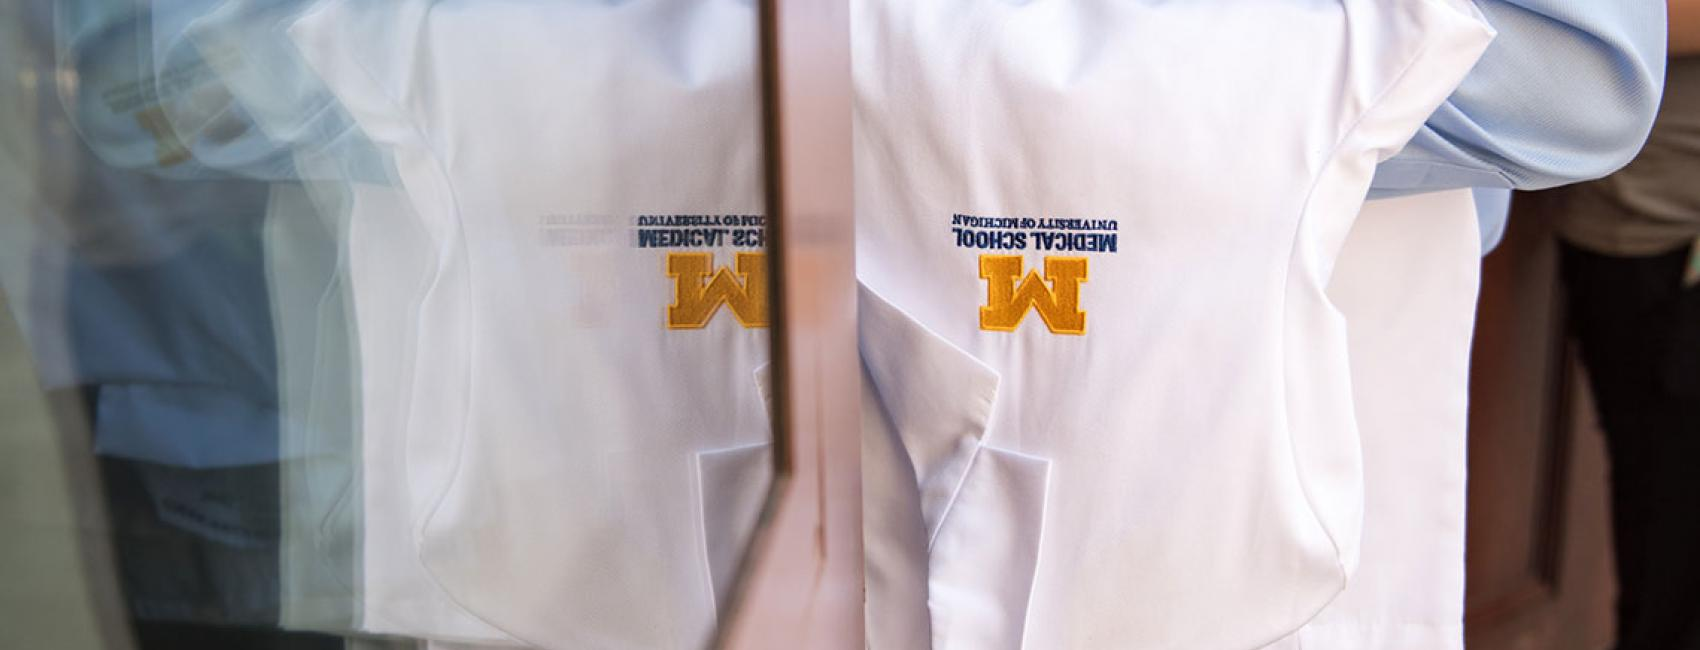 University of Michigan Medical School white coat